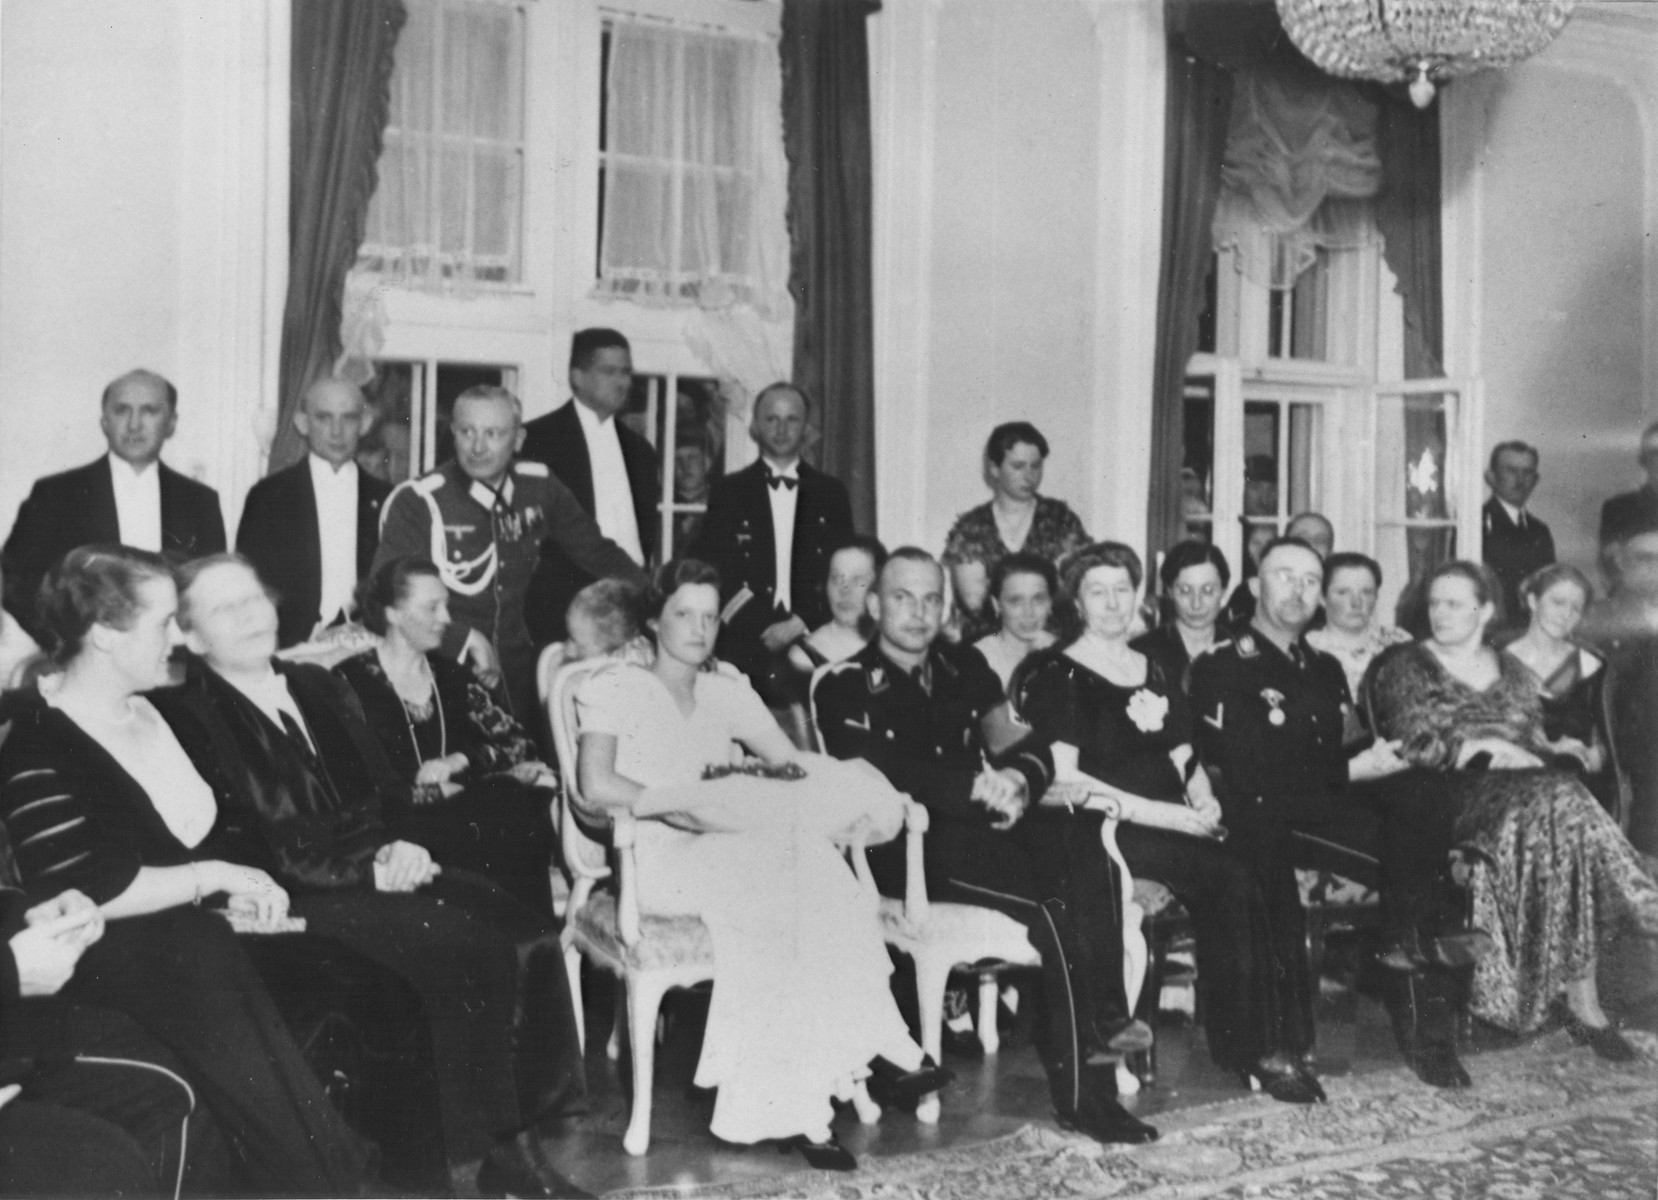 Reichsfuehrer-SS Heinrich Himmler attends the wedding of Hans-Adolf Pruetzmann.  Himmler and his wife, Margarete, are seated in the front row at the right.